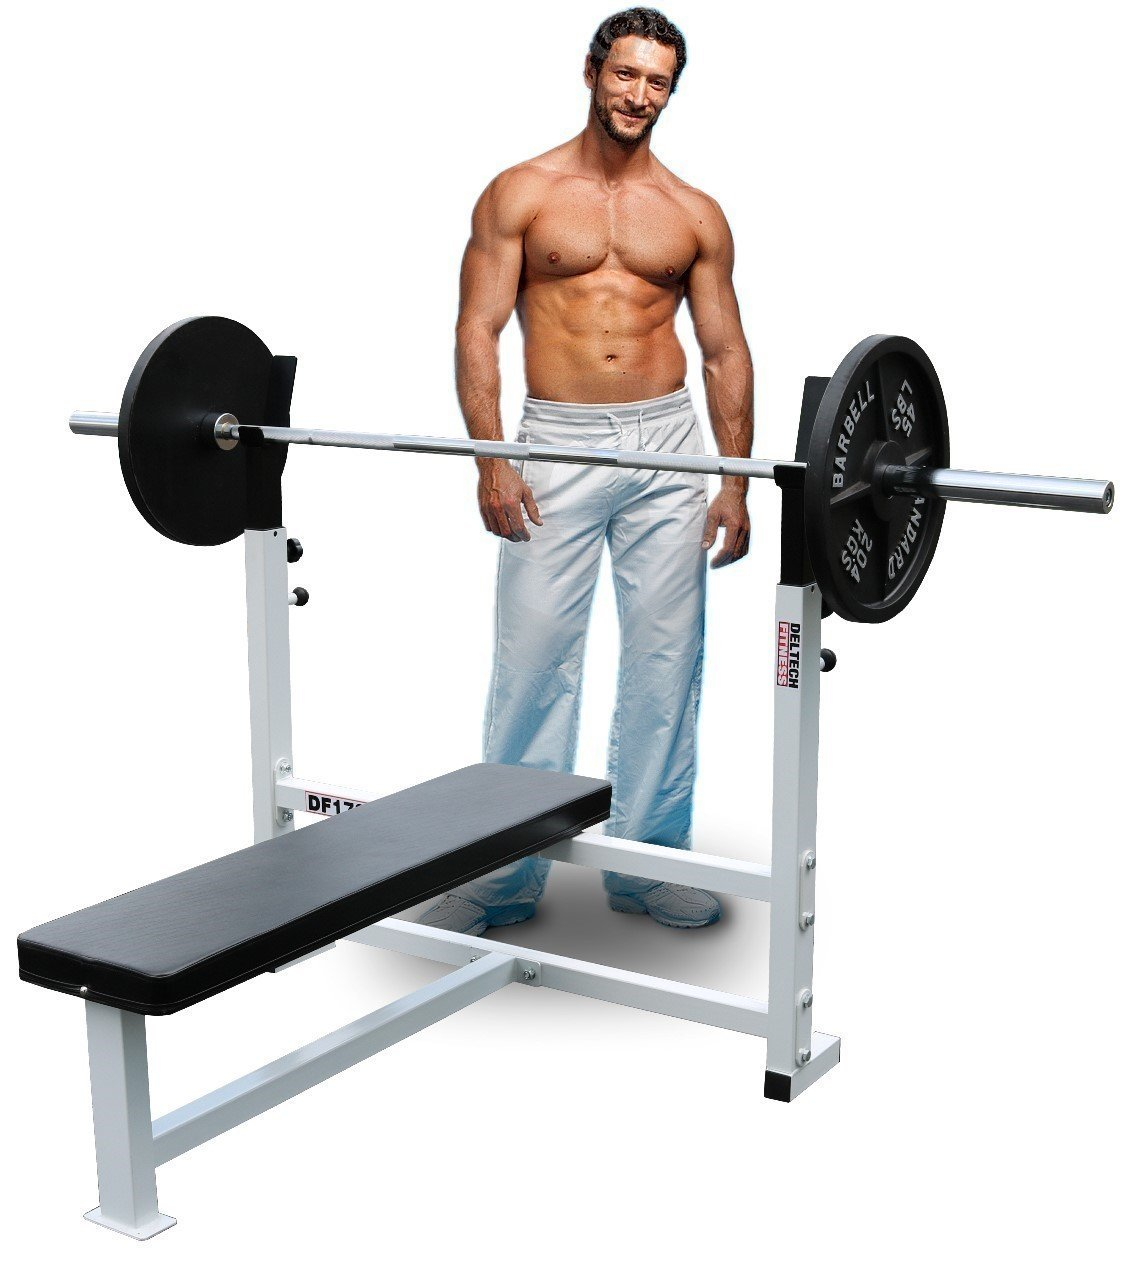 Deltech Fitness Flat Olympic Weight Bench